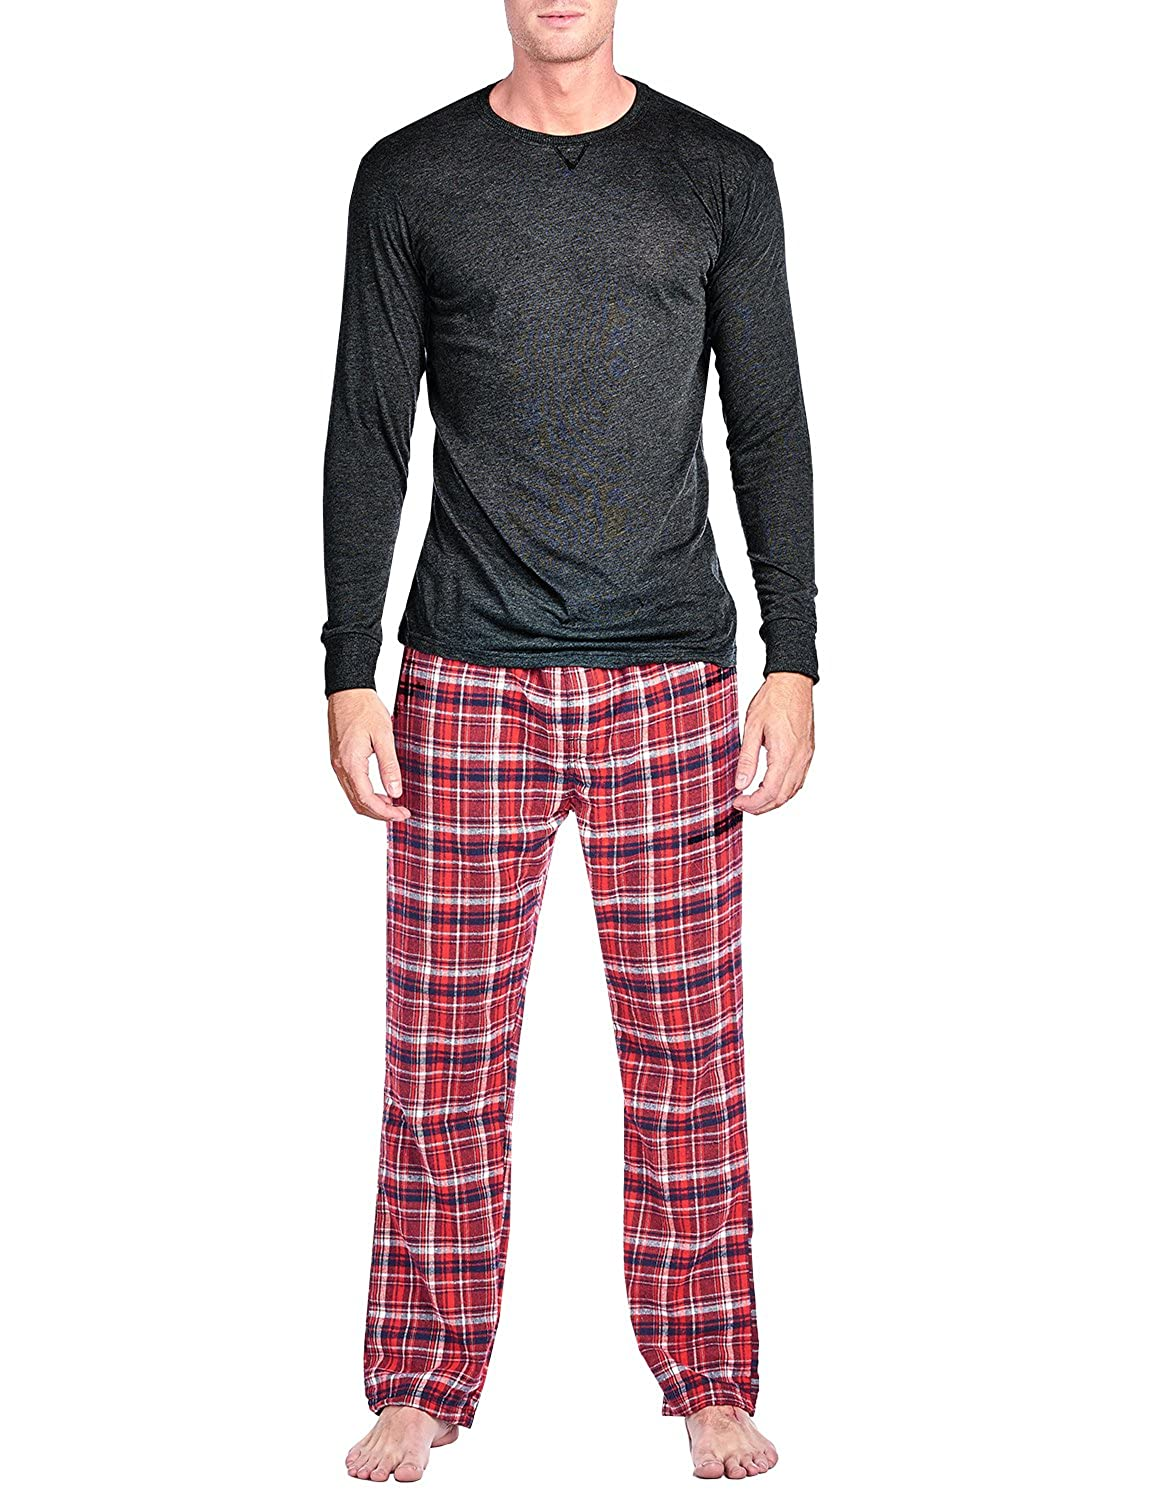 Ashford & Brooks Mens Flannel Long-Sleeve Top and Flannel Bottom Pajama Set AB86200FP